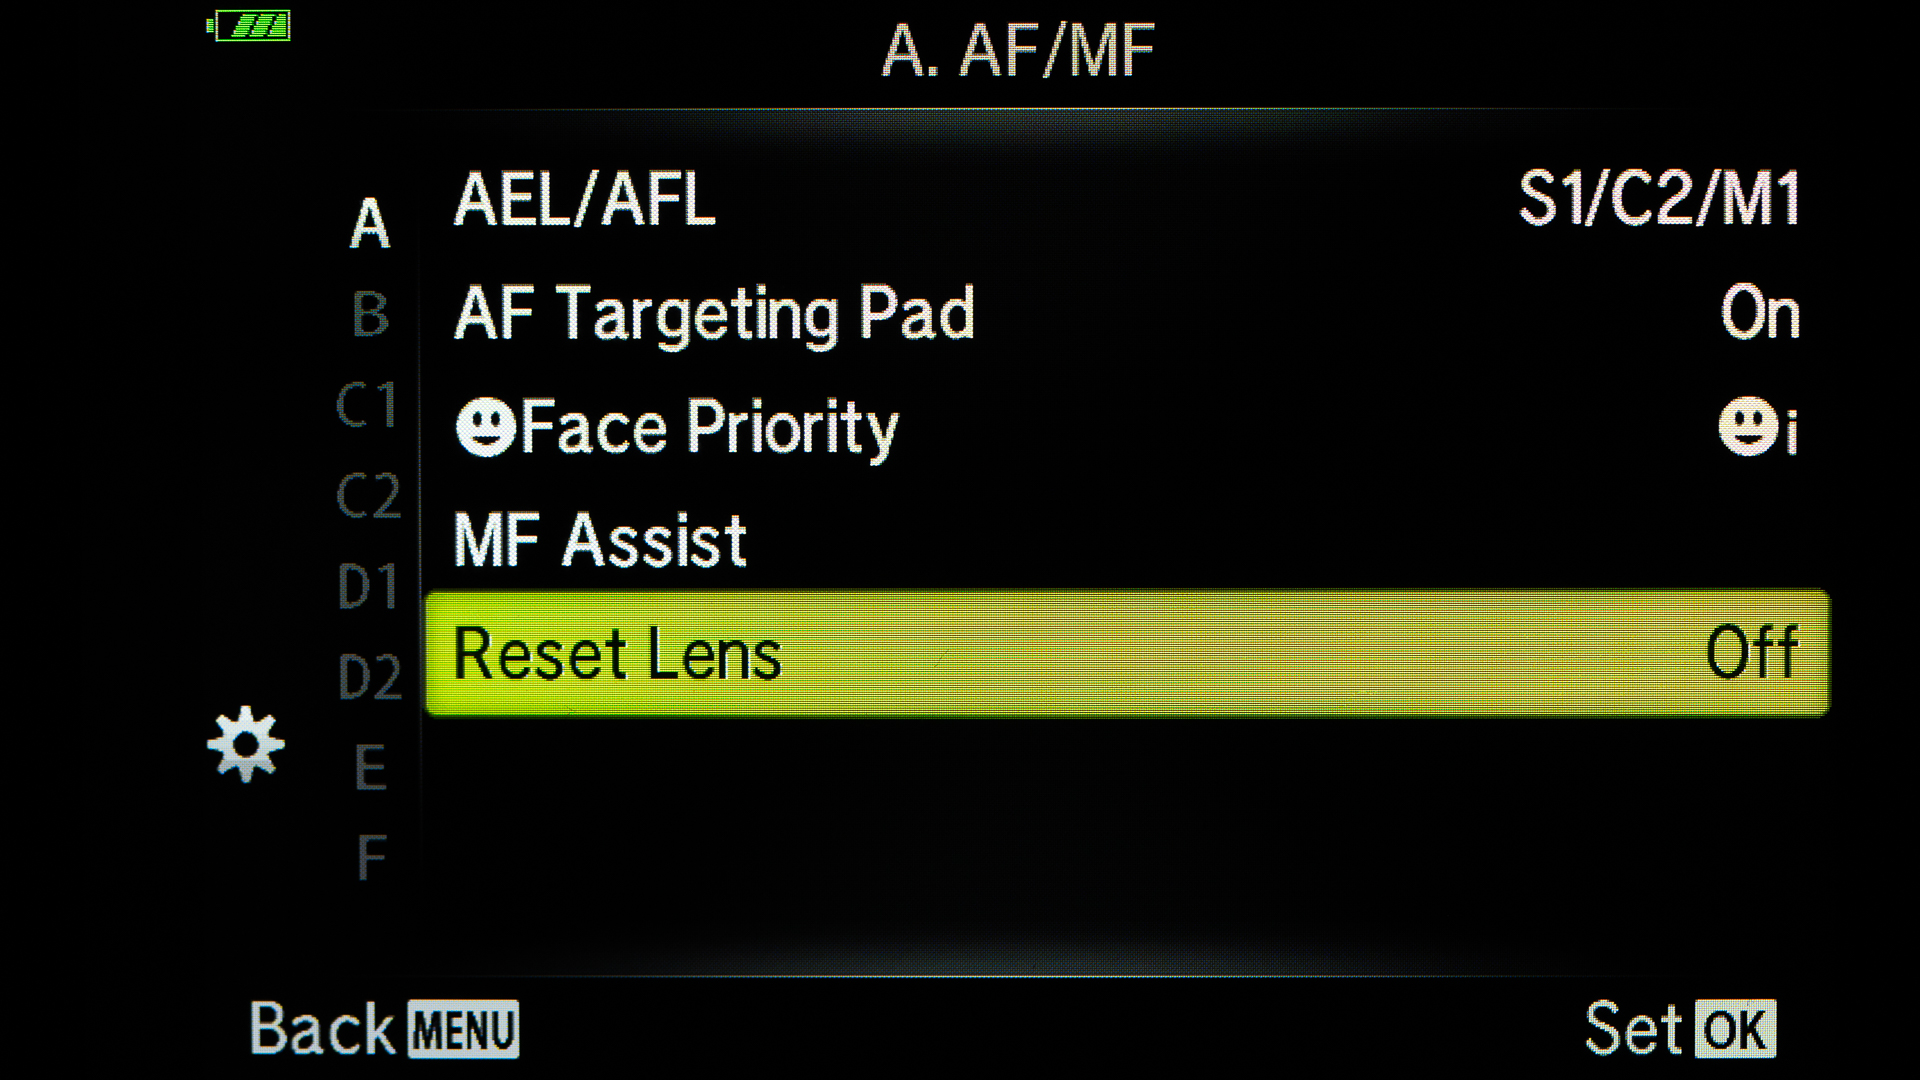 Turning the Reset Lens off, the 14-42mm Kit lens will strat from the focal length that was last used when the camera was turned off.